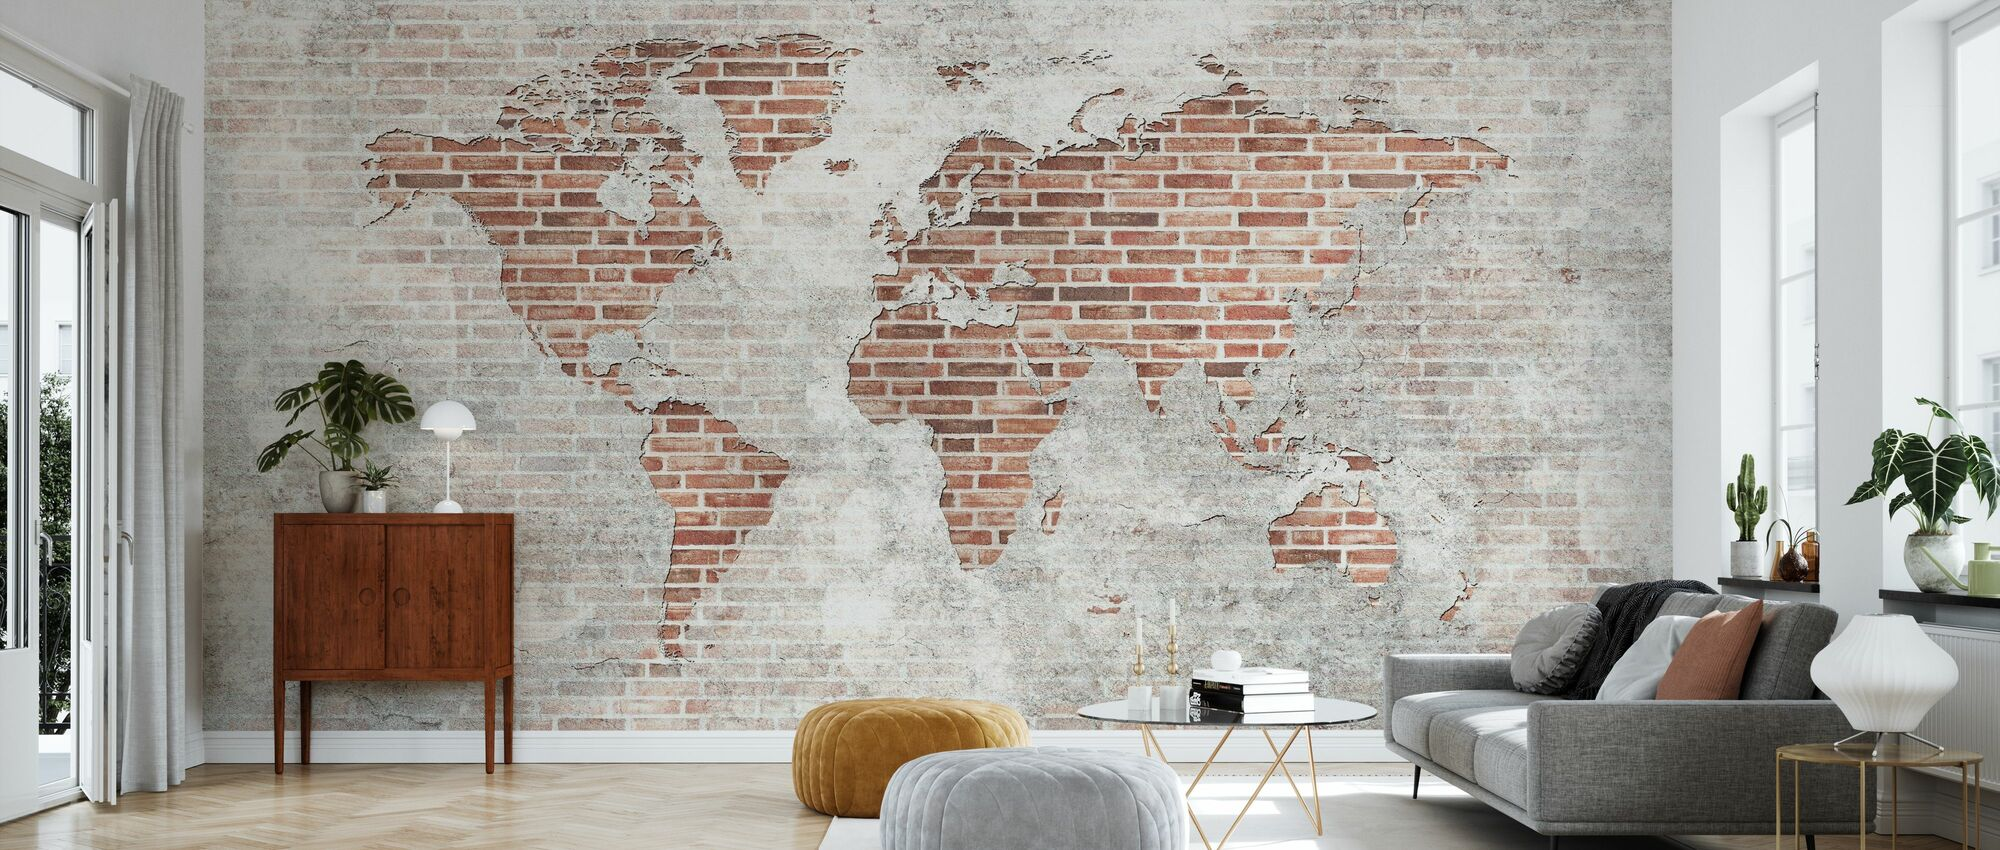 Brick Wall World Map - Wallpaper - Living Room